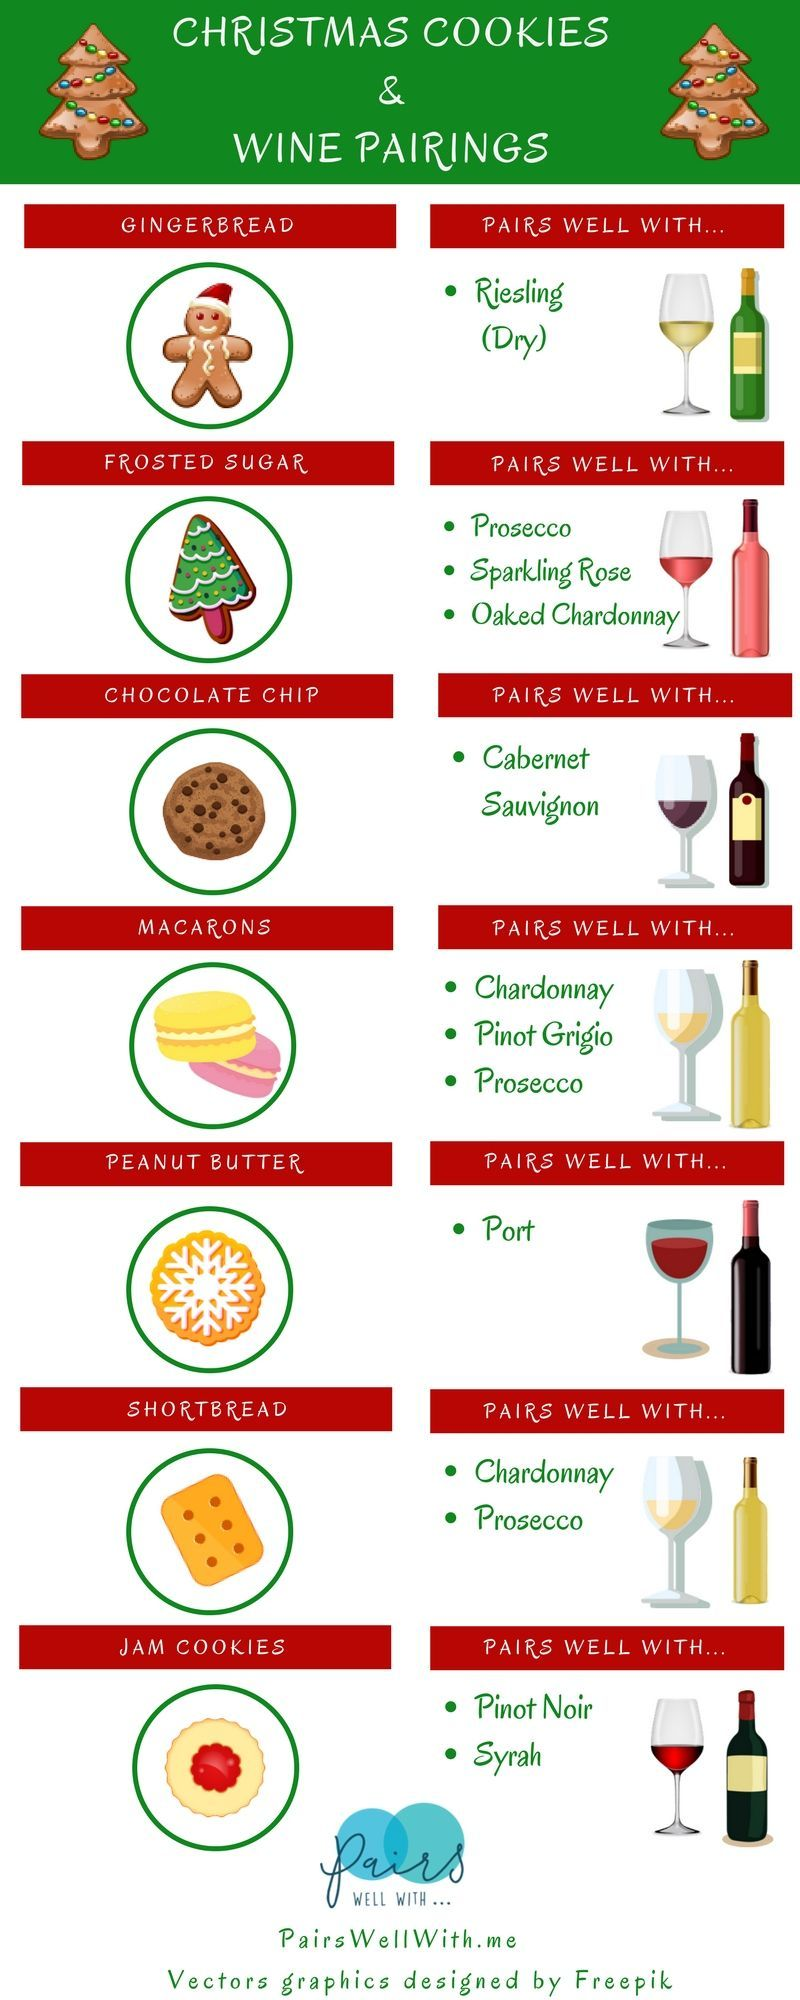 Hosting A Christmas Bake Exchange Try These Cookie And Wine Pairings Wine Wine Night In 2020 Wine Pairing Wine Recipes Wine Tasting Party